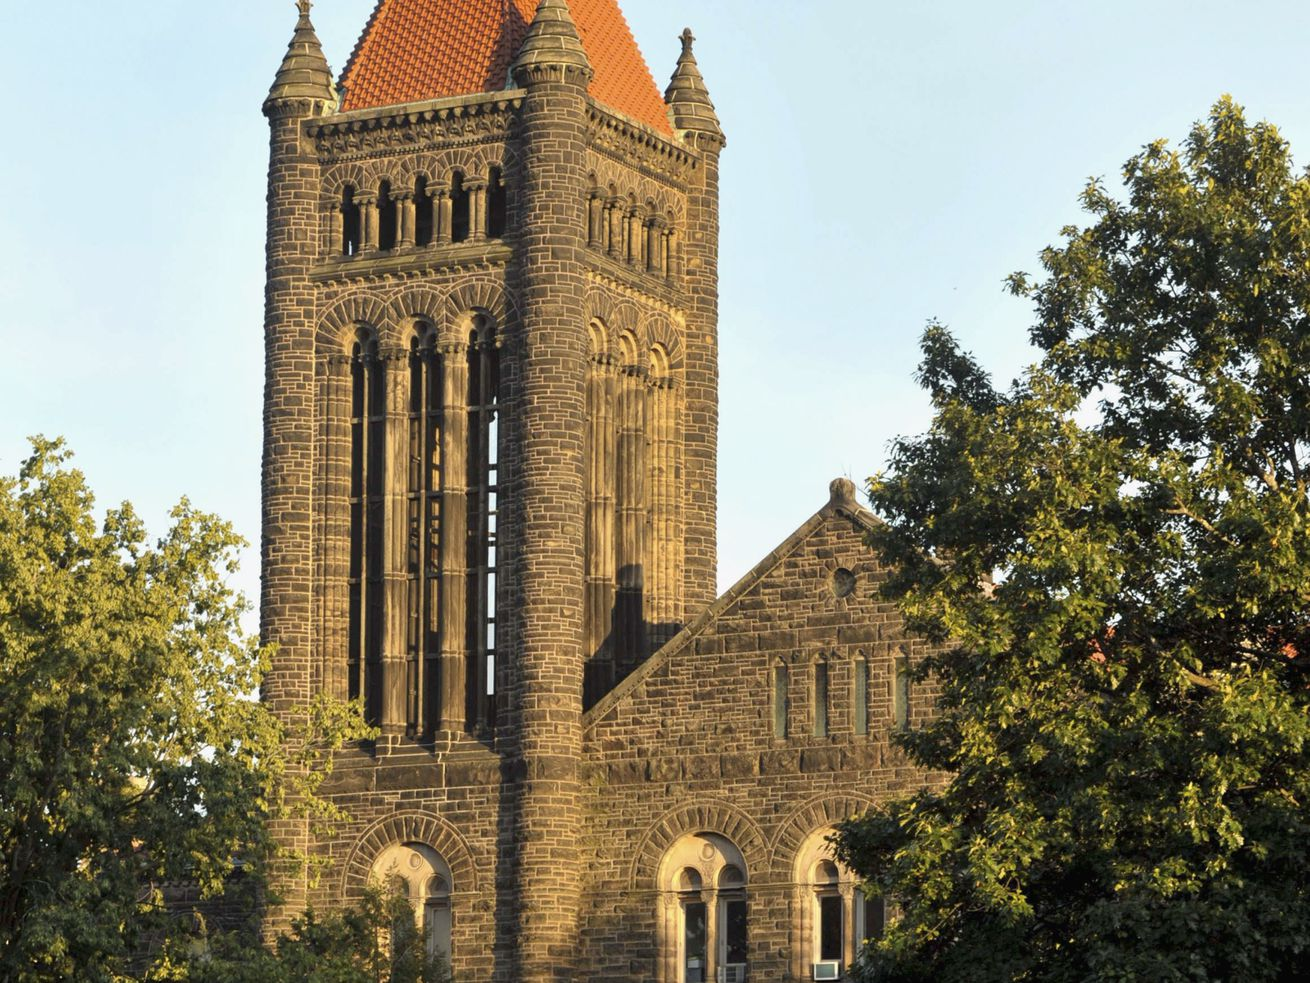 Altgeld Hall, an architectural icon on the University of Illinois campus in Urbana.